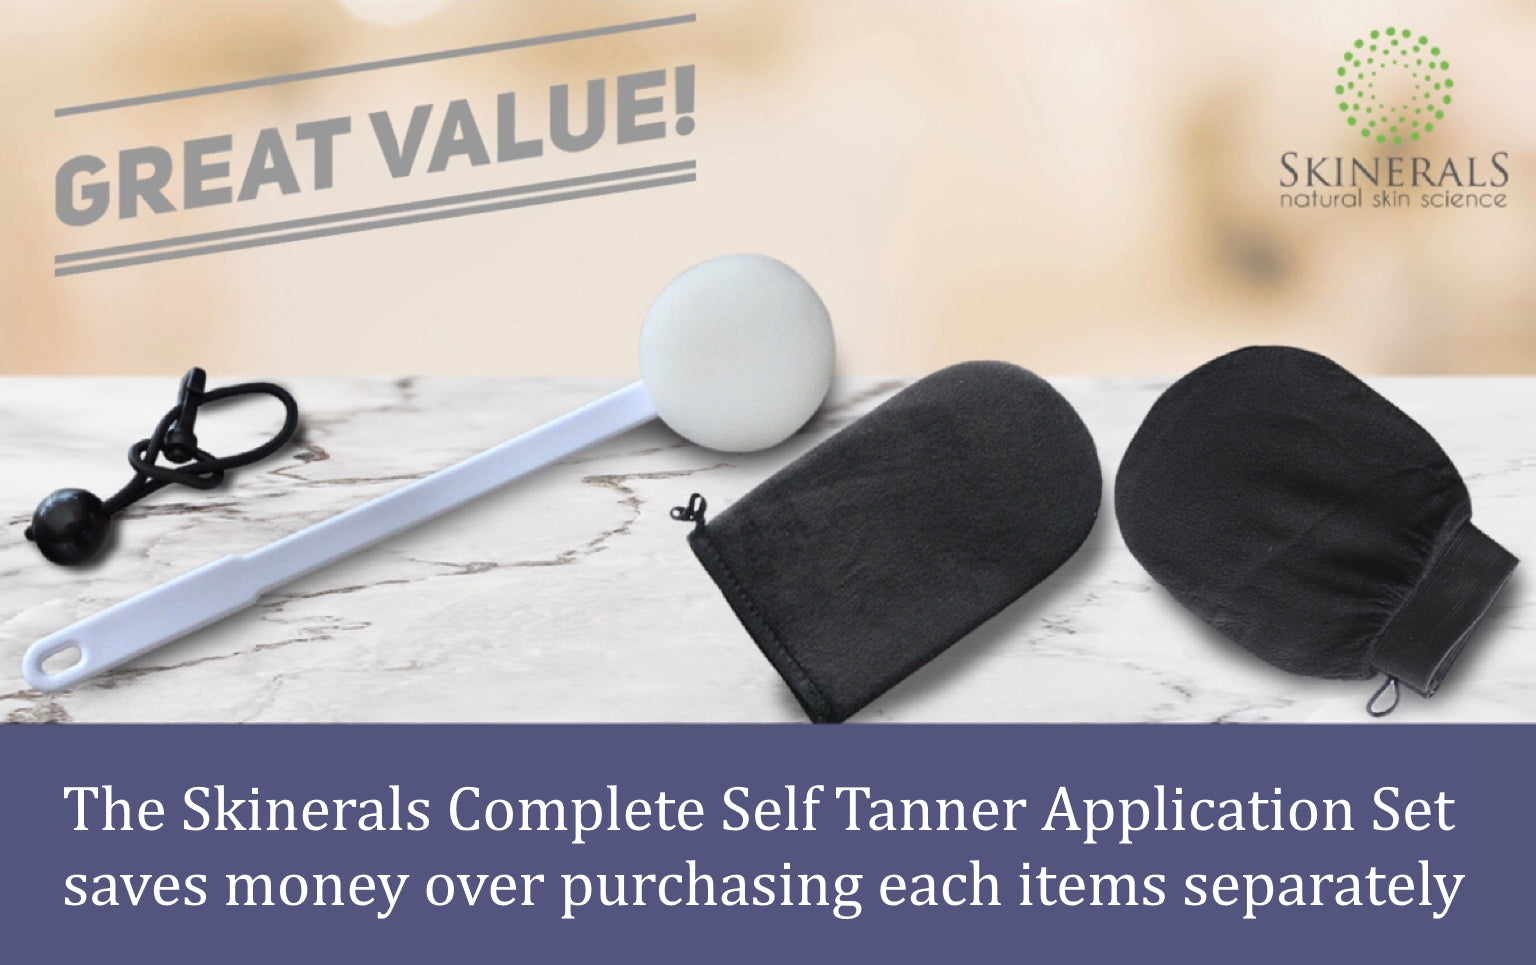 Skinerals Complete Self Tanner Application Set with Back Wand, Exfoliator Glove, and Tanning Applicator Mitt